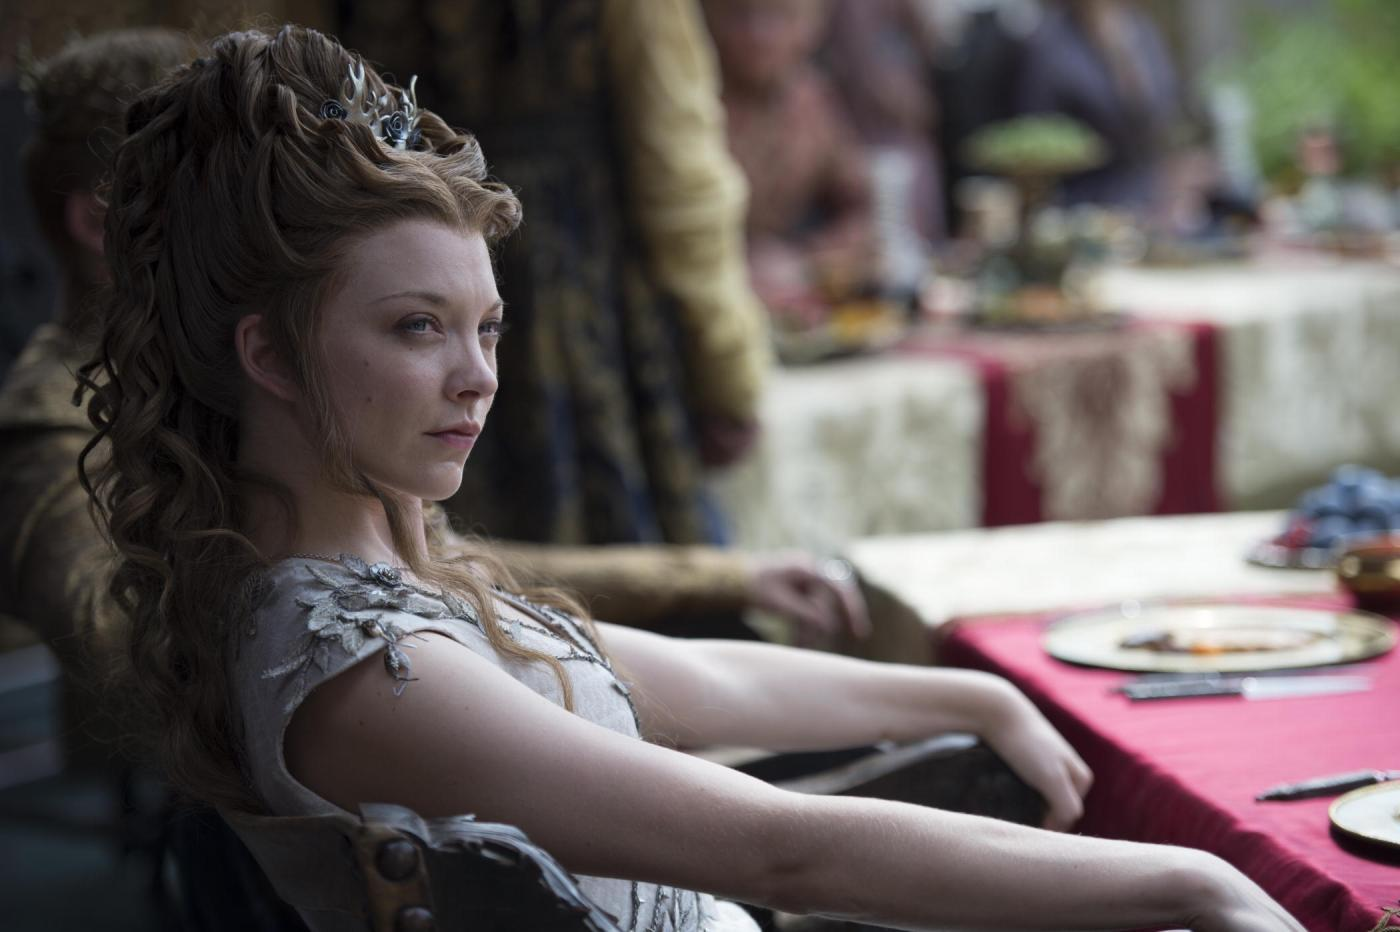 C:\Users\user\Desktop\Reacho\pics\margaery-tyrell-season-4-margaery-tyrell-36940347-2100-1398.jpg